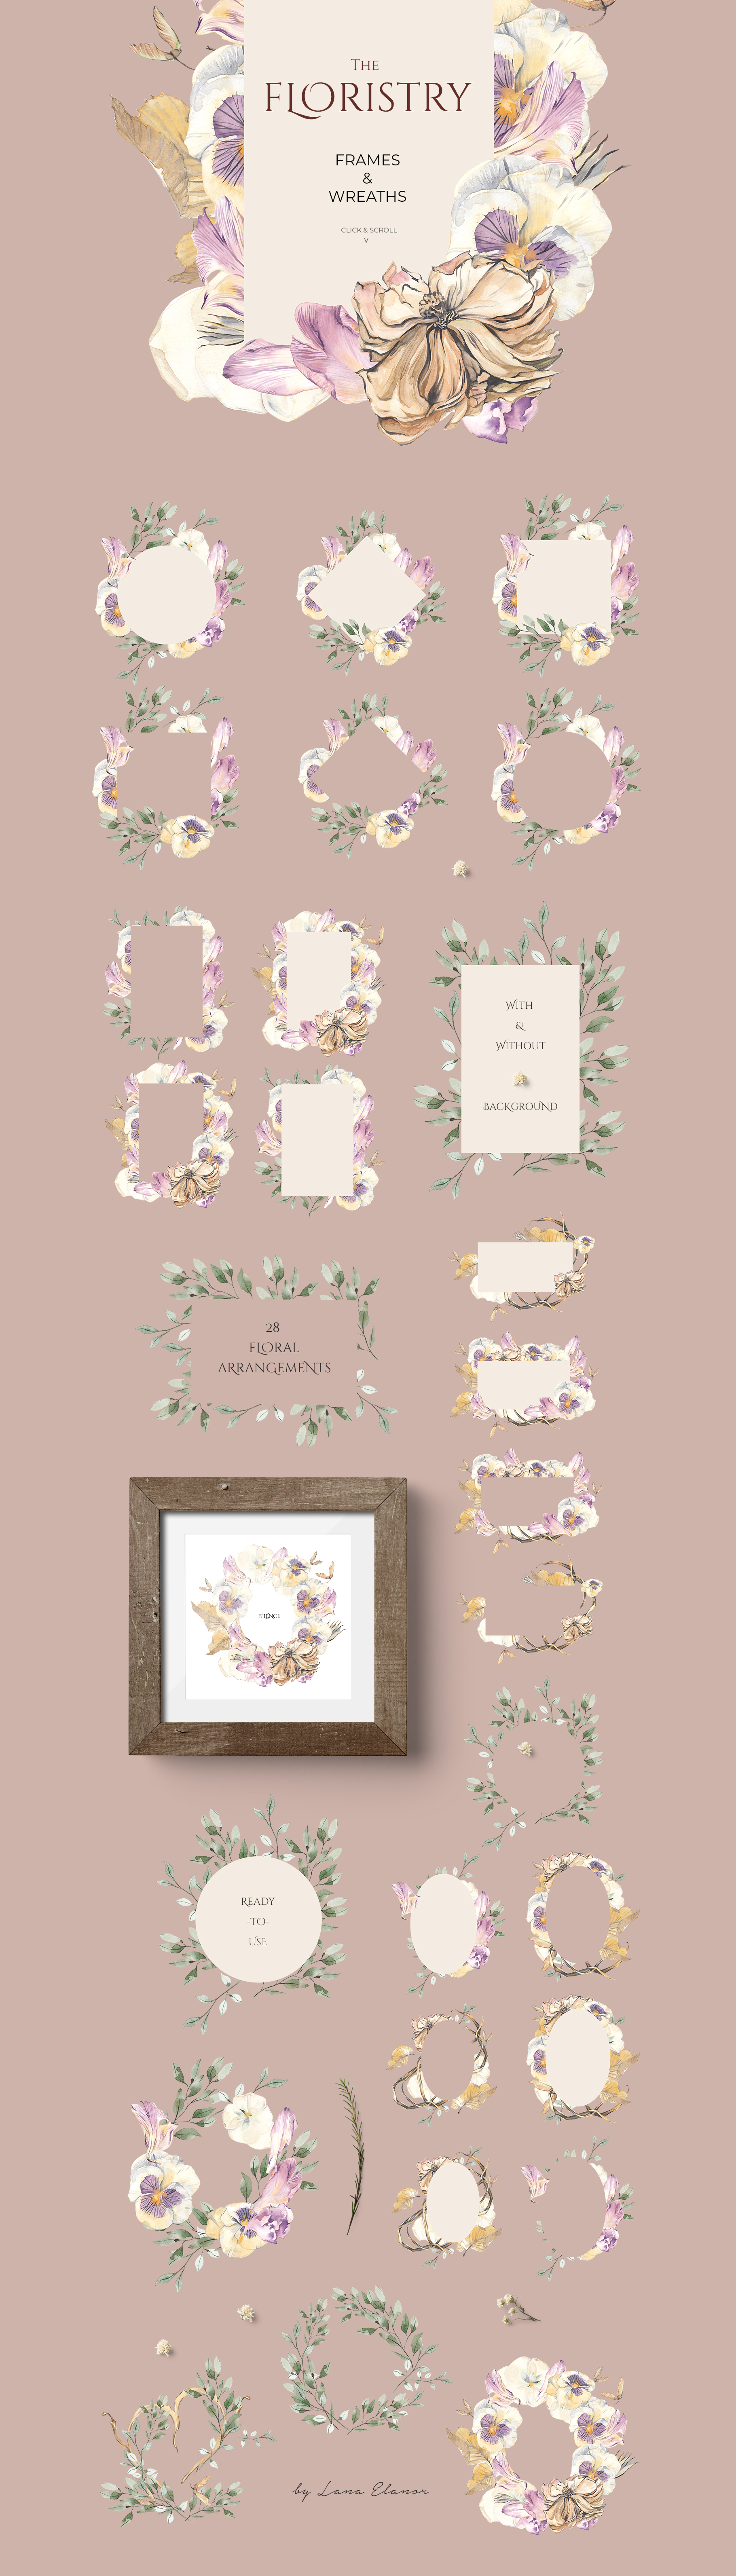 THE FLORISTRY floral collection - watercolor, line art, real example image 4